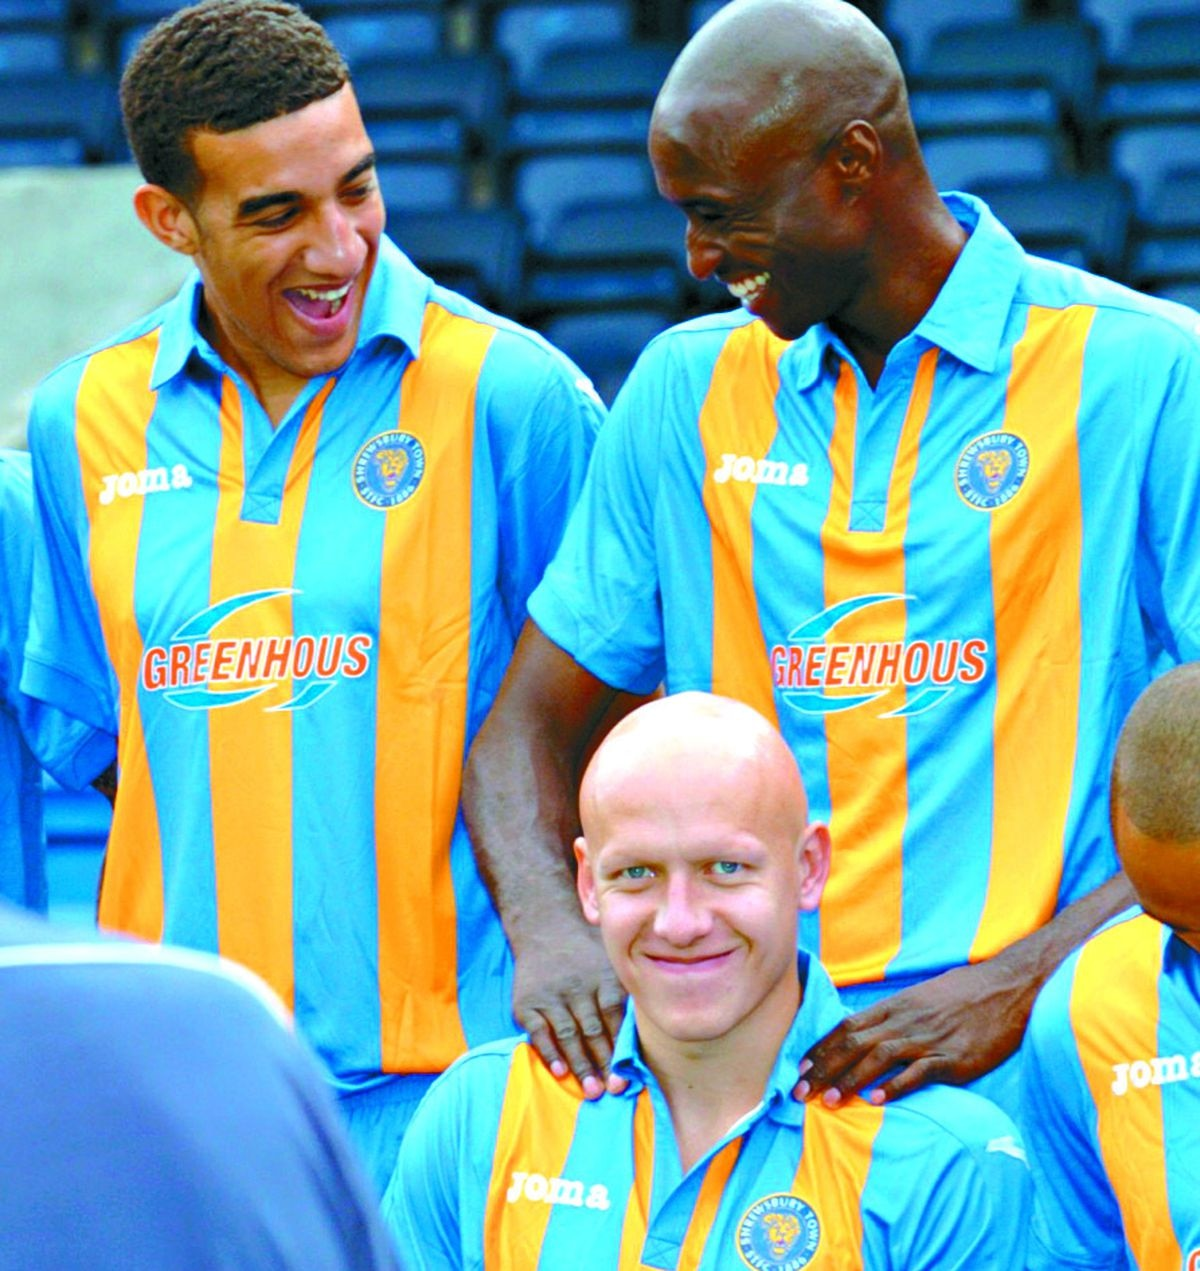 Morgan is set to be reunited with former Salop colleagues at the match, which officially opens the new community pitch